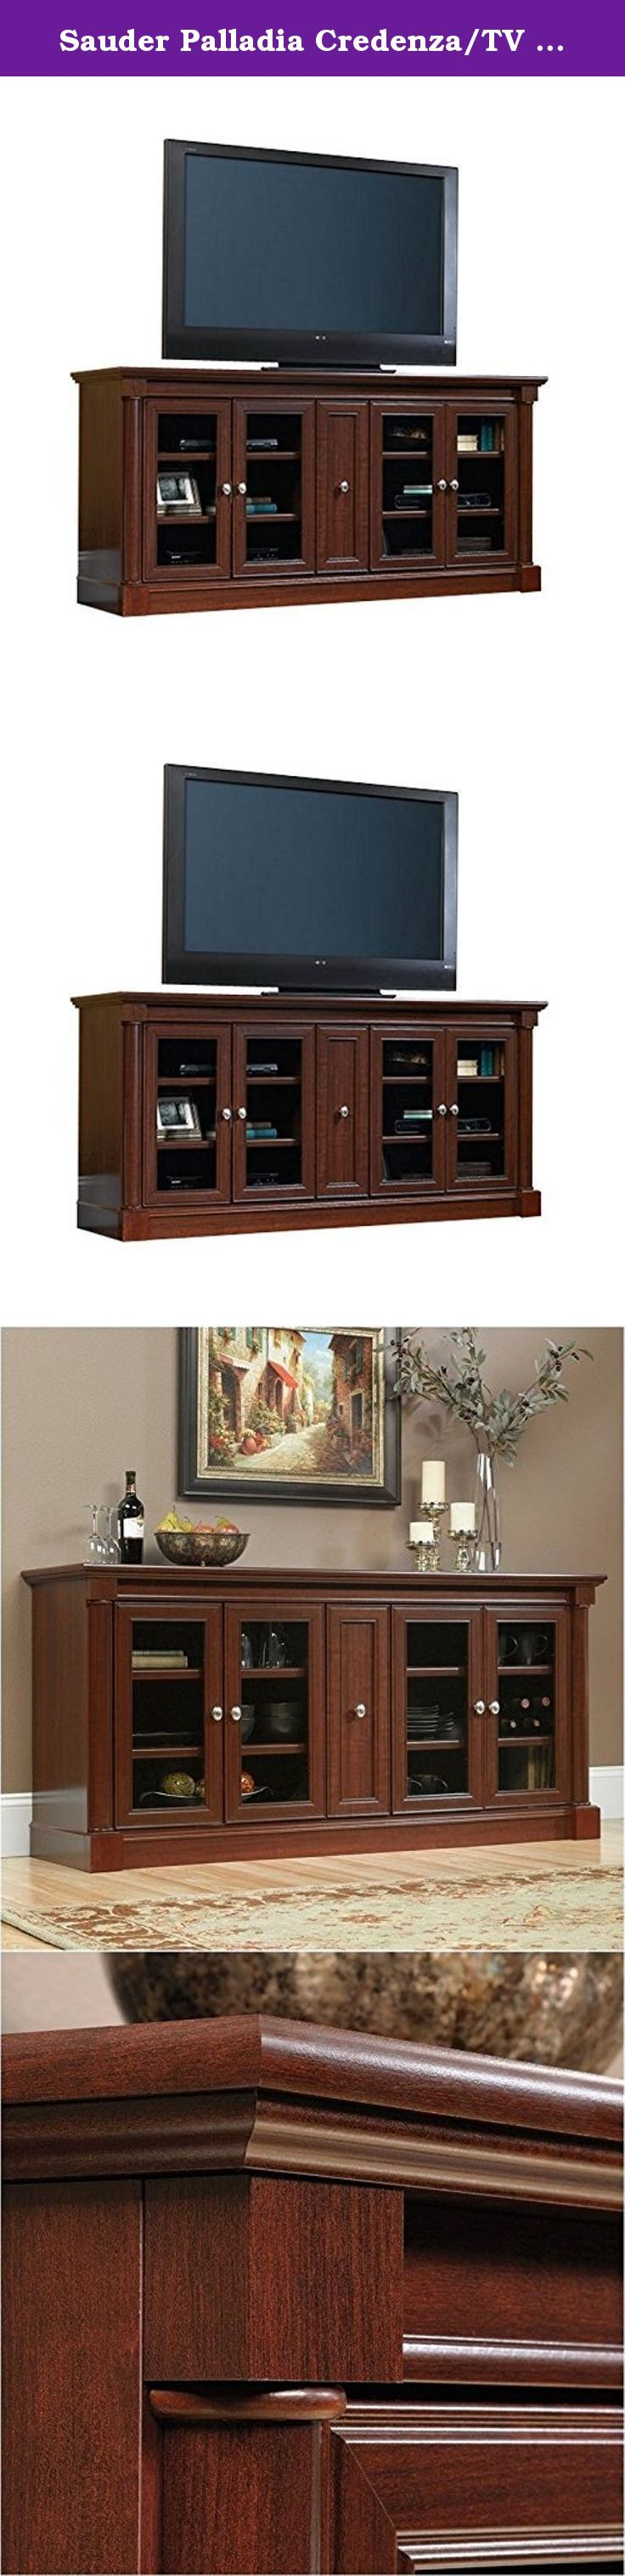 Sauder Palladia Credenza/TV Stand. Affluent styling at an affordable price, the Sauder Palladia Credenza/TV Stand features elegant wood and select cherry veneer with clear glass doors and ample storage and display options. The two-door cabinets at each side provide a total of four adjustable shelves for A/V components and media, and the wooden center door opens to an included power strip. About Sauder Sauder is North America's leading producer of ready-to-assemble (RTA) furniture and the...